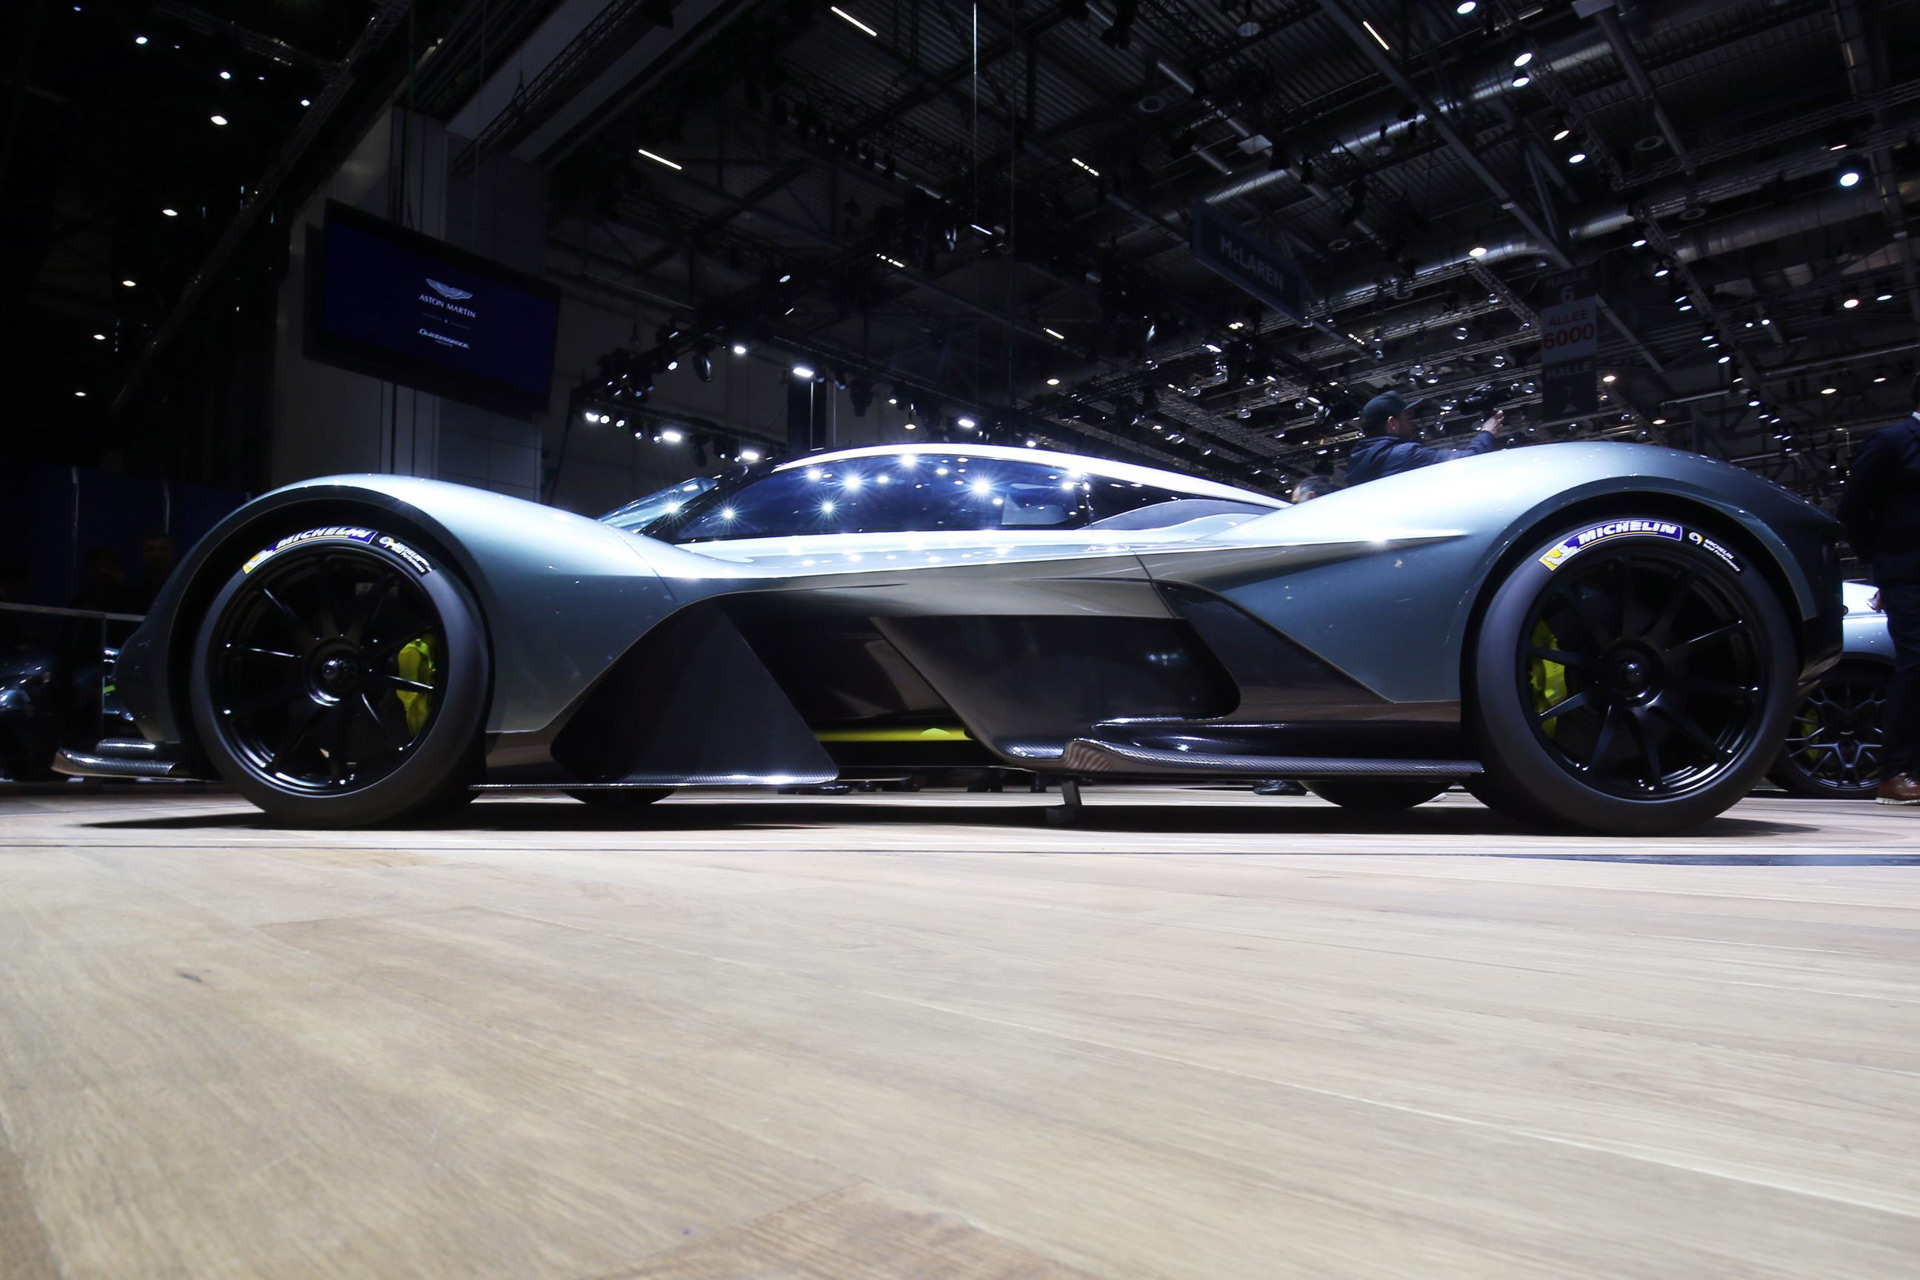 Aston Martin CEO: mid-engine supercar coming in 2020